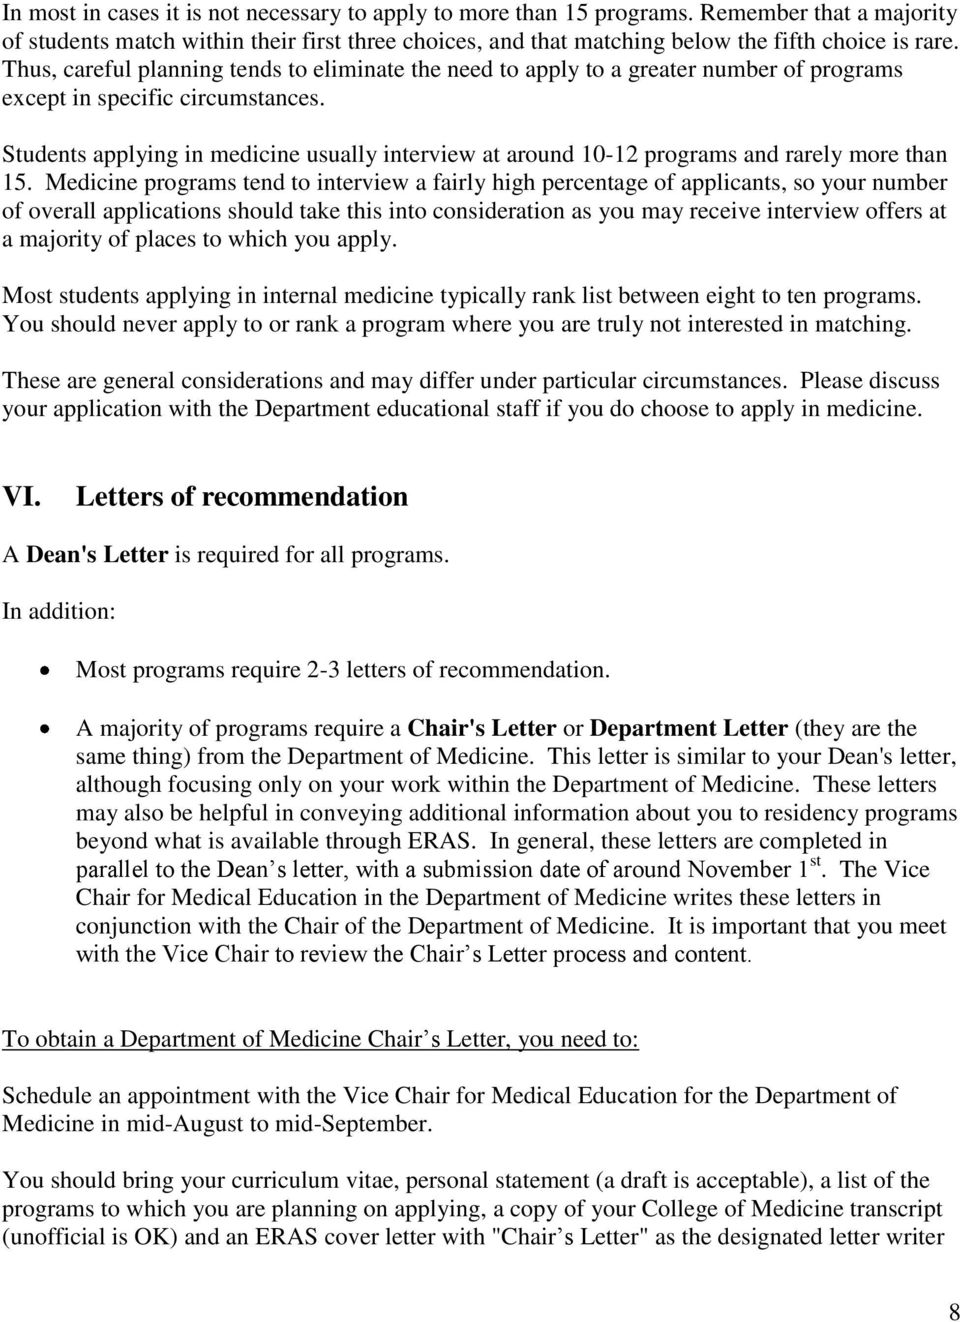 aamc eras letter of recommendation cover sheet Request for letter of recommendation/cover sheetplease use this sheet as a guide for completing a letter of //wwwaamcorg/services/eras/282520/lor.